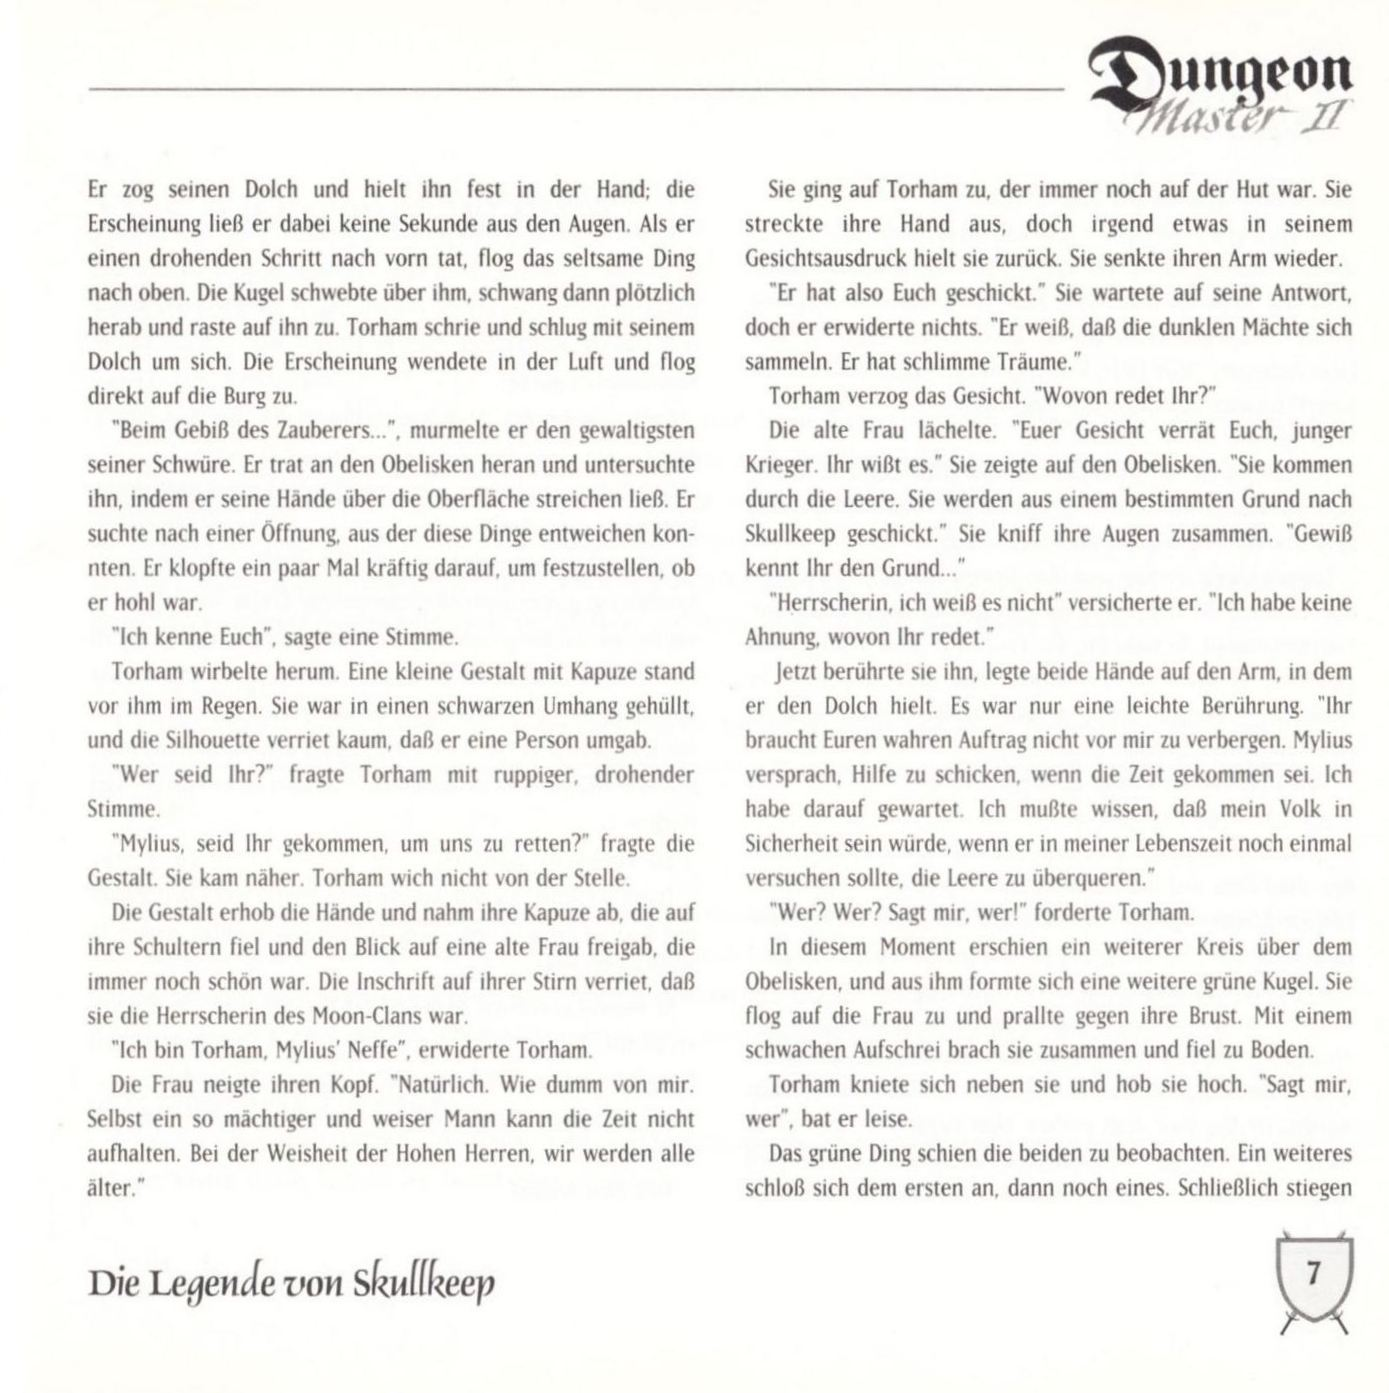 Game - Dungeon Master II - DE - PC - Blackmarket With Booklet - Booklet - Page 009 - Scan